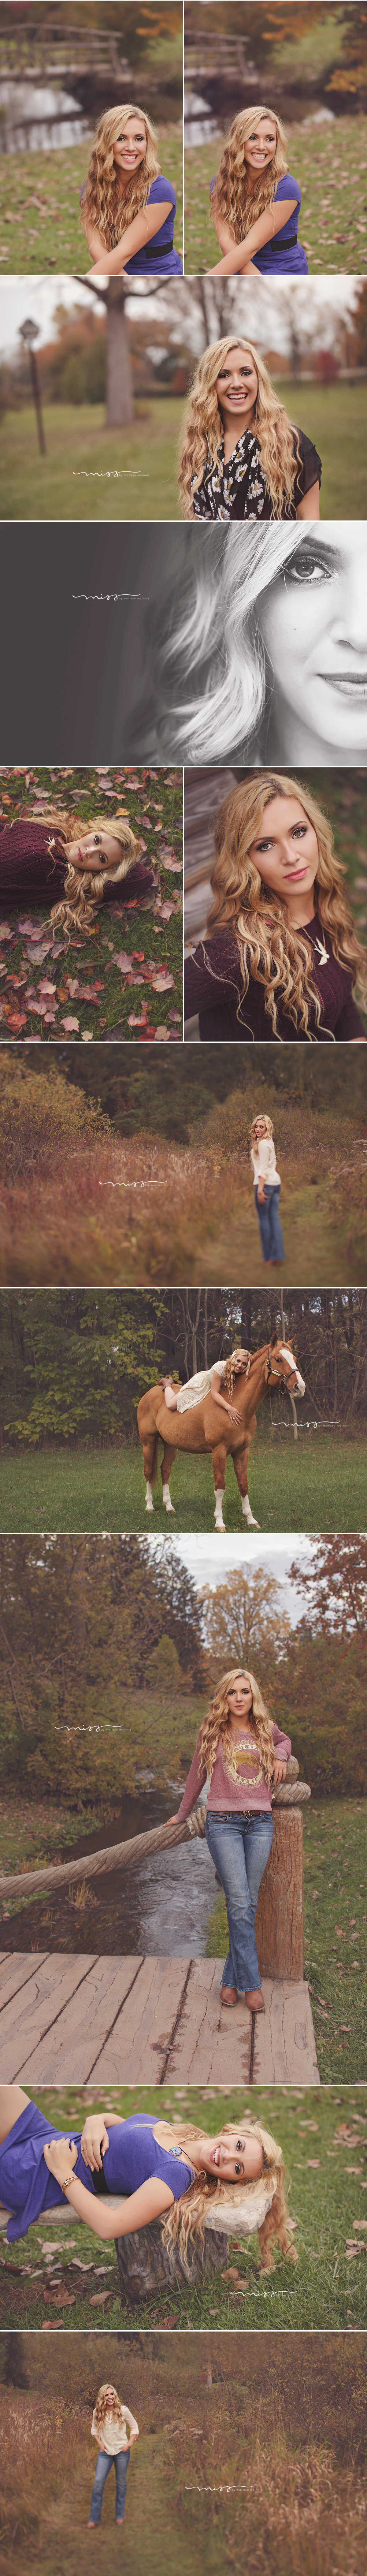 Manchester Michigan Senior Photographer | Savanna 2